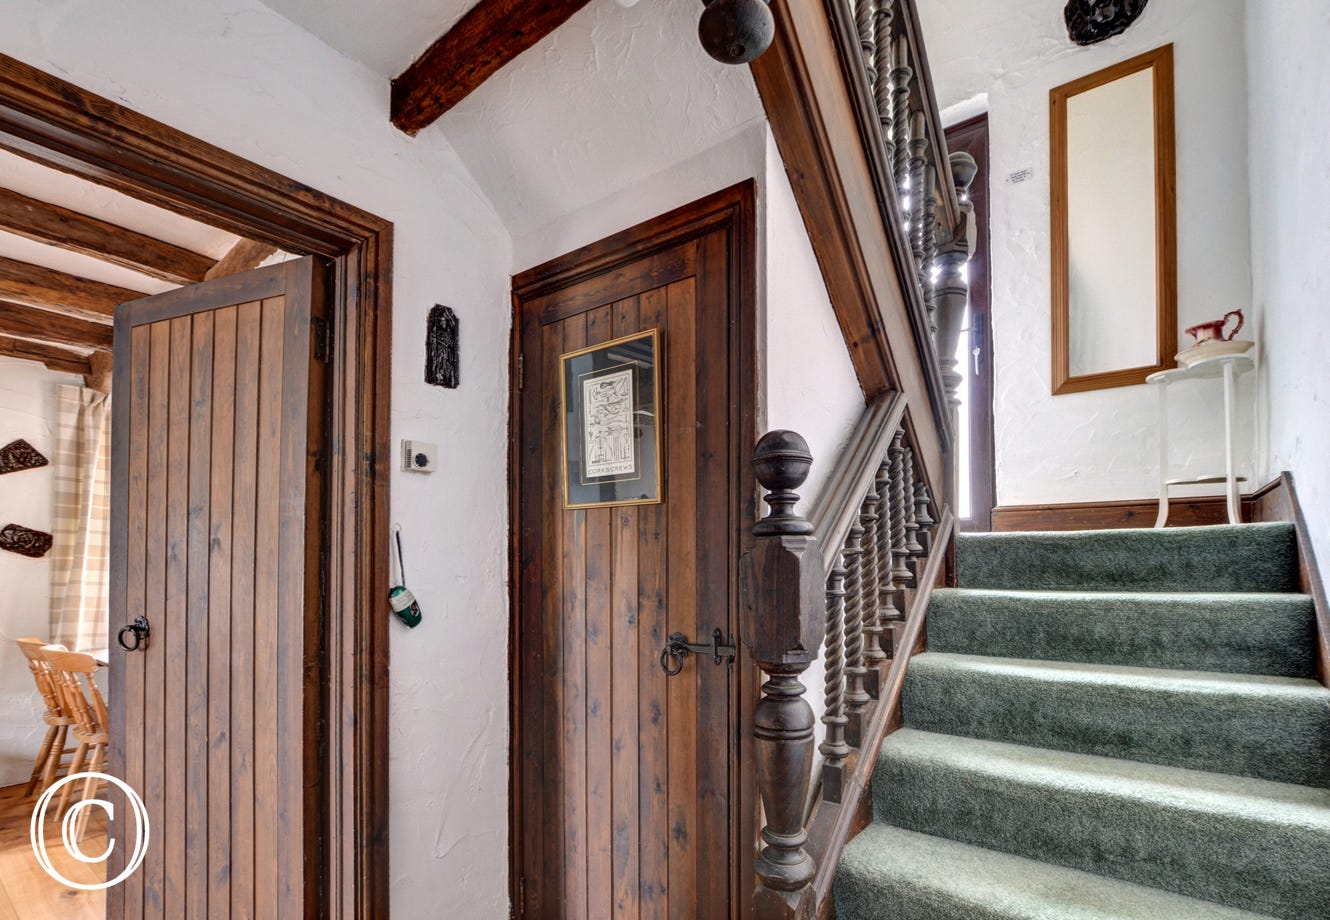 The hallway and stairs up to the patio door